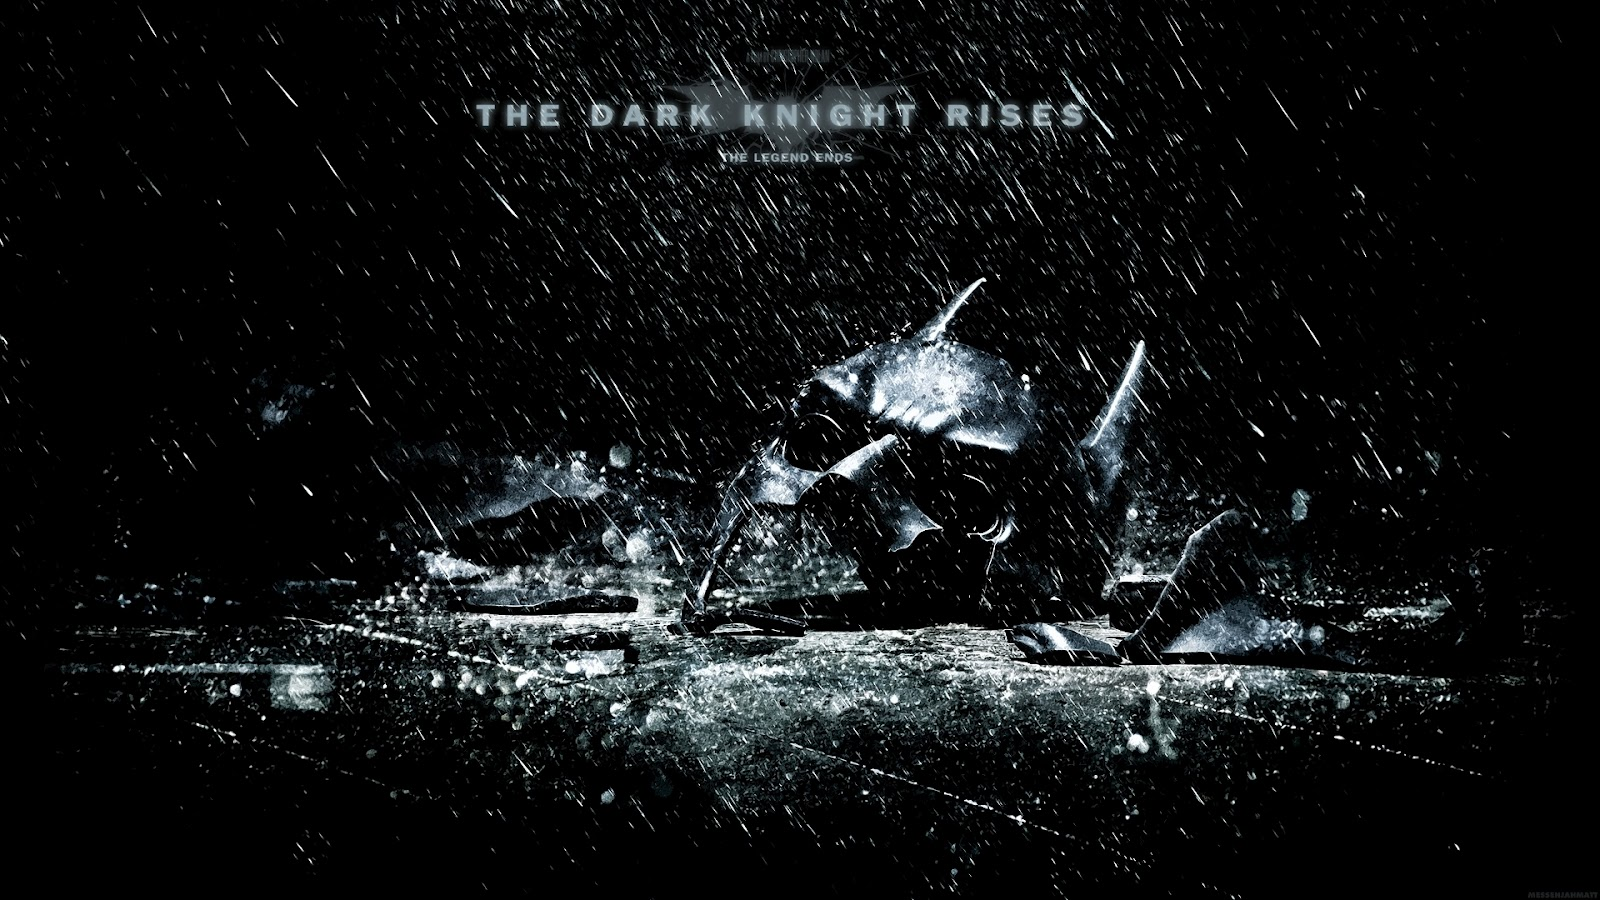 http://4.bp.blogspot.com/-_KngocTLY2c/T8zCzoeZk1I/AAAAAAAAMQ0/jAkZkcxtyRg/s1600/Dark_Knight_Rises_Movie_Wallpaper_1920x1080.jpg